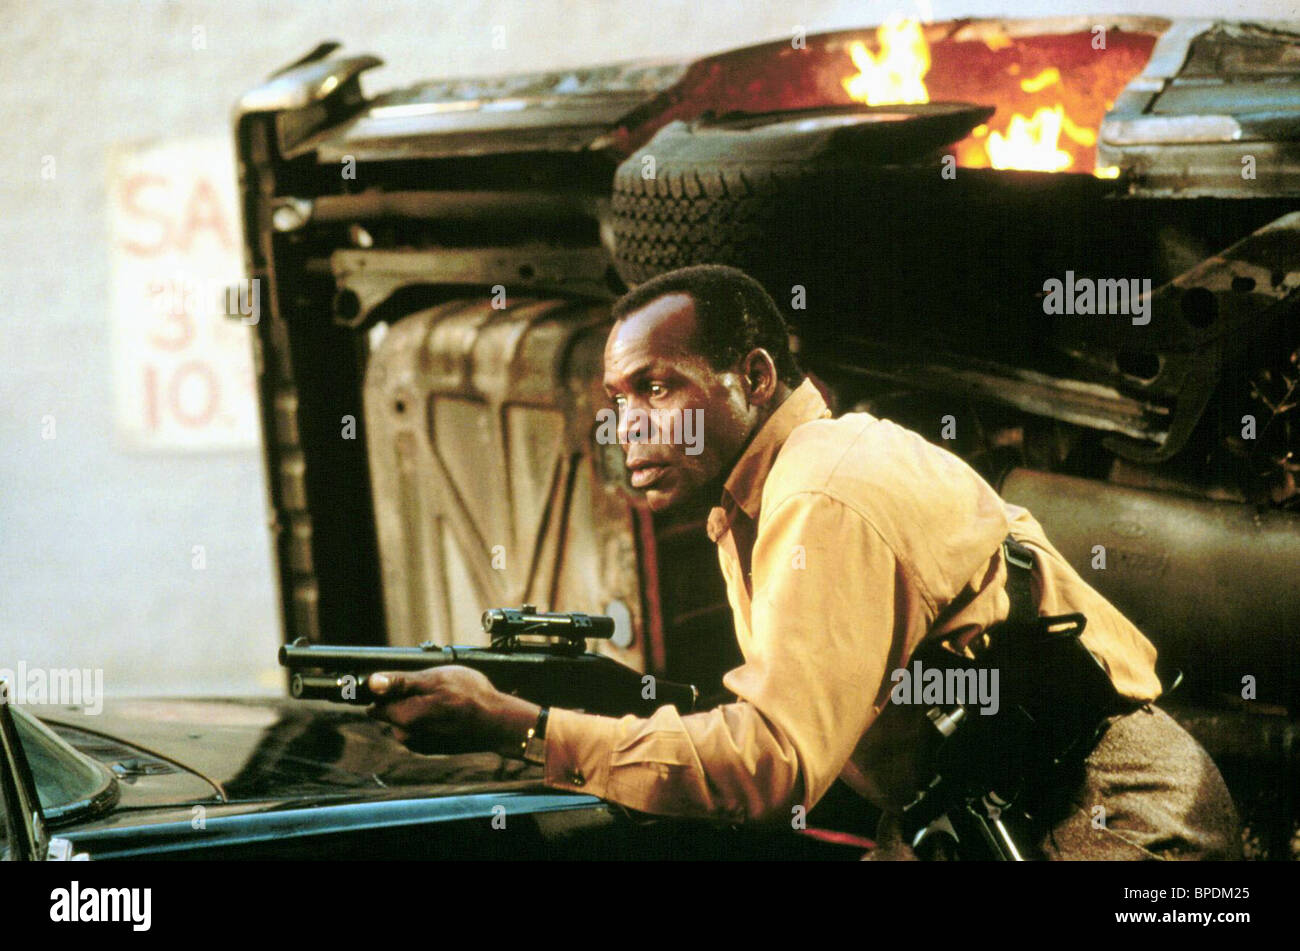 DANNY GLOVER PREDATOR 2 (1990 Stock Photo: 31033917 - Alamy Predator 2 Danny Glover